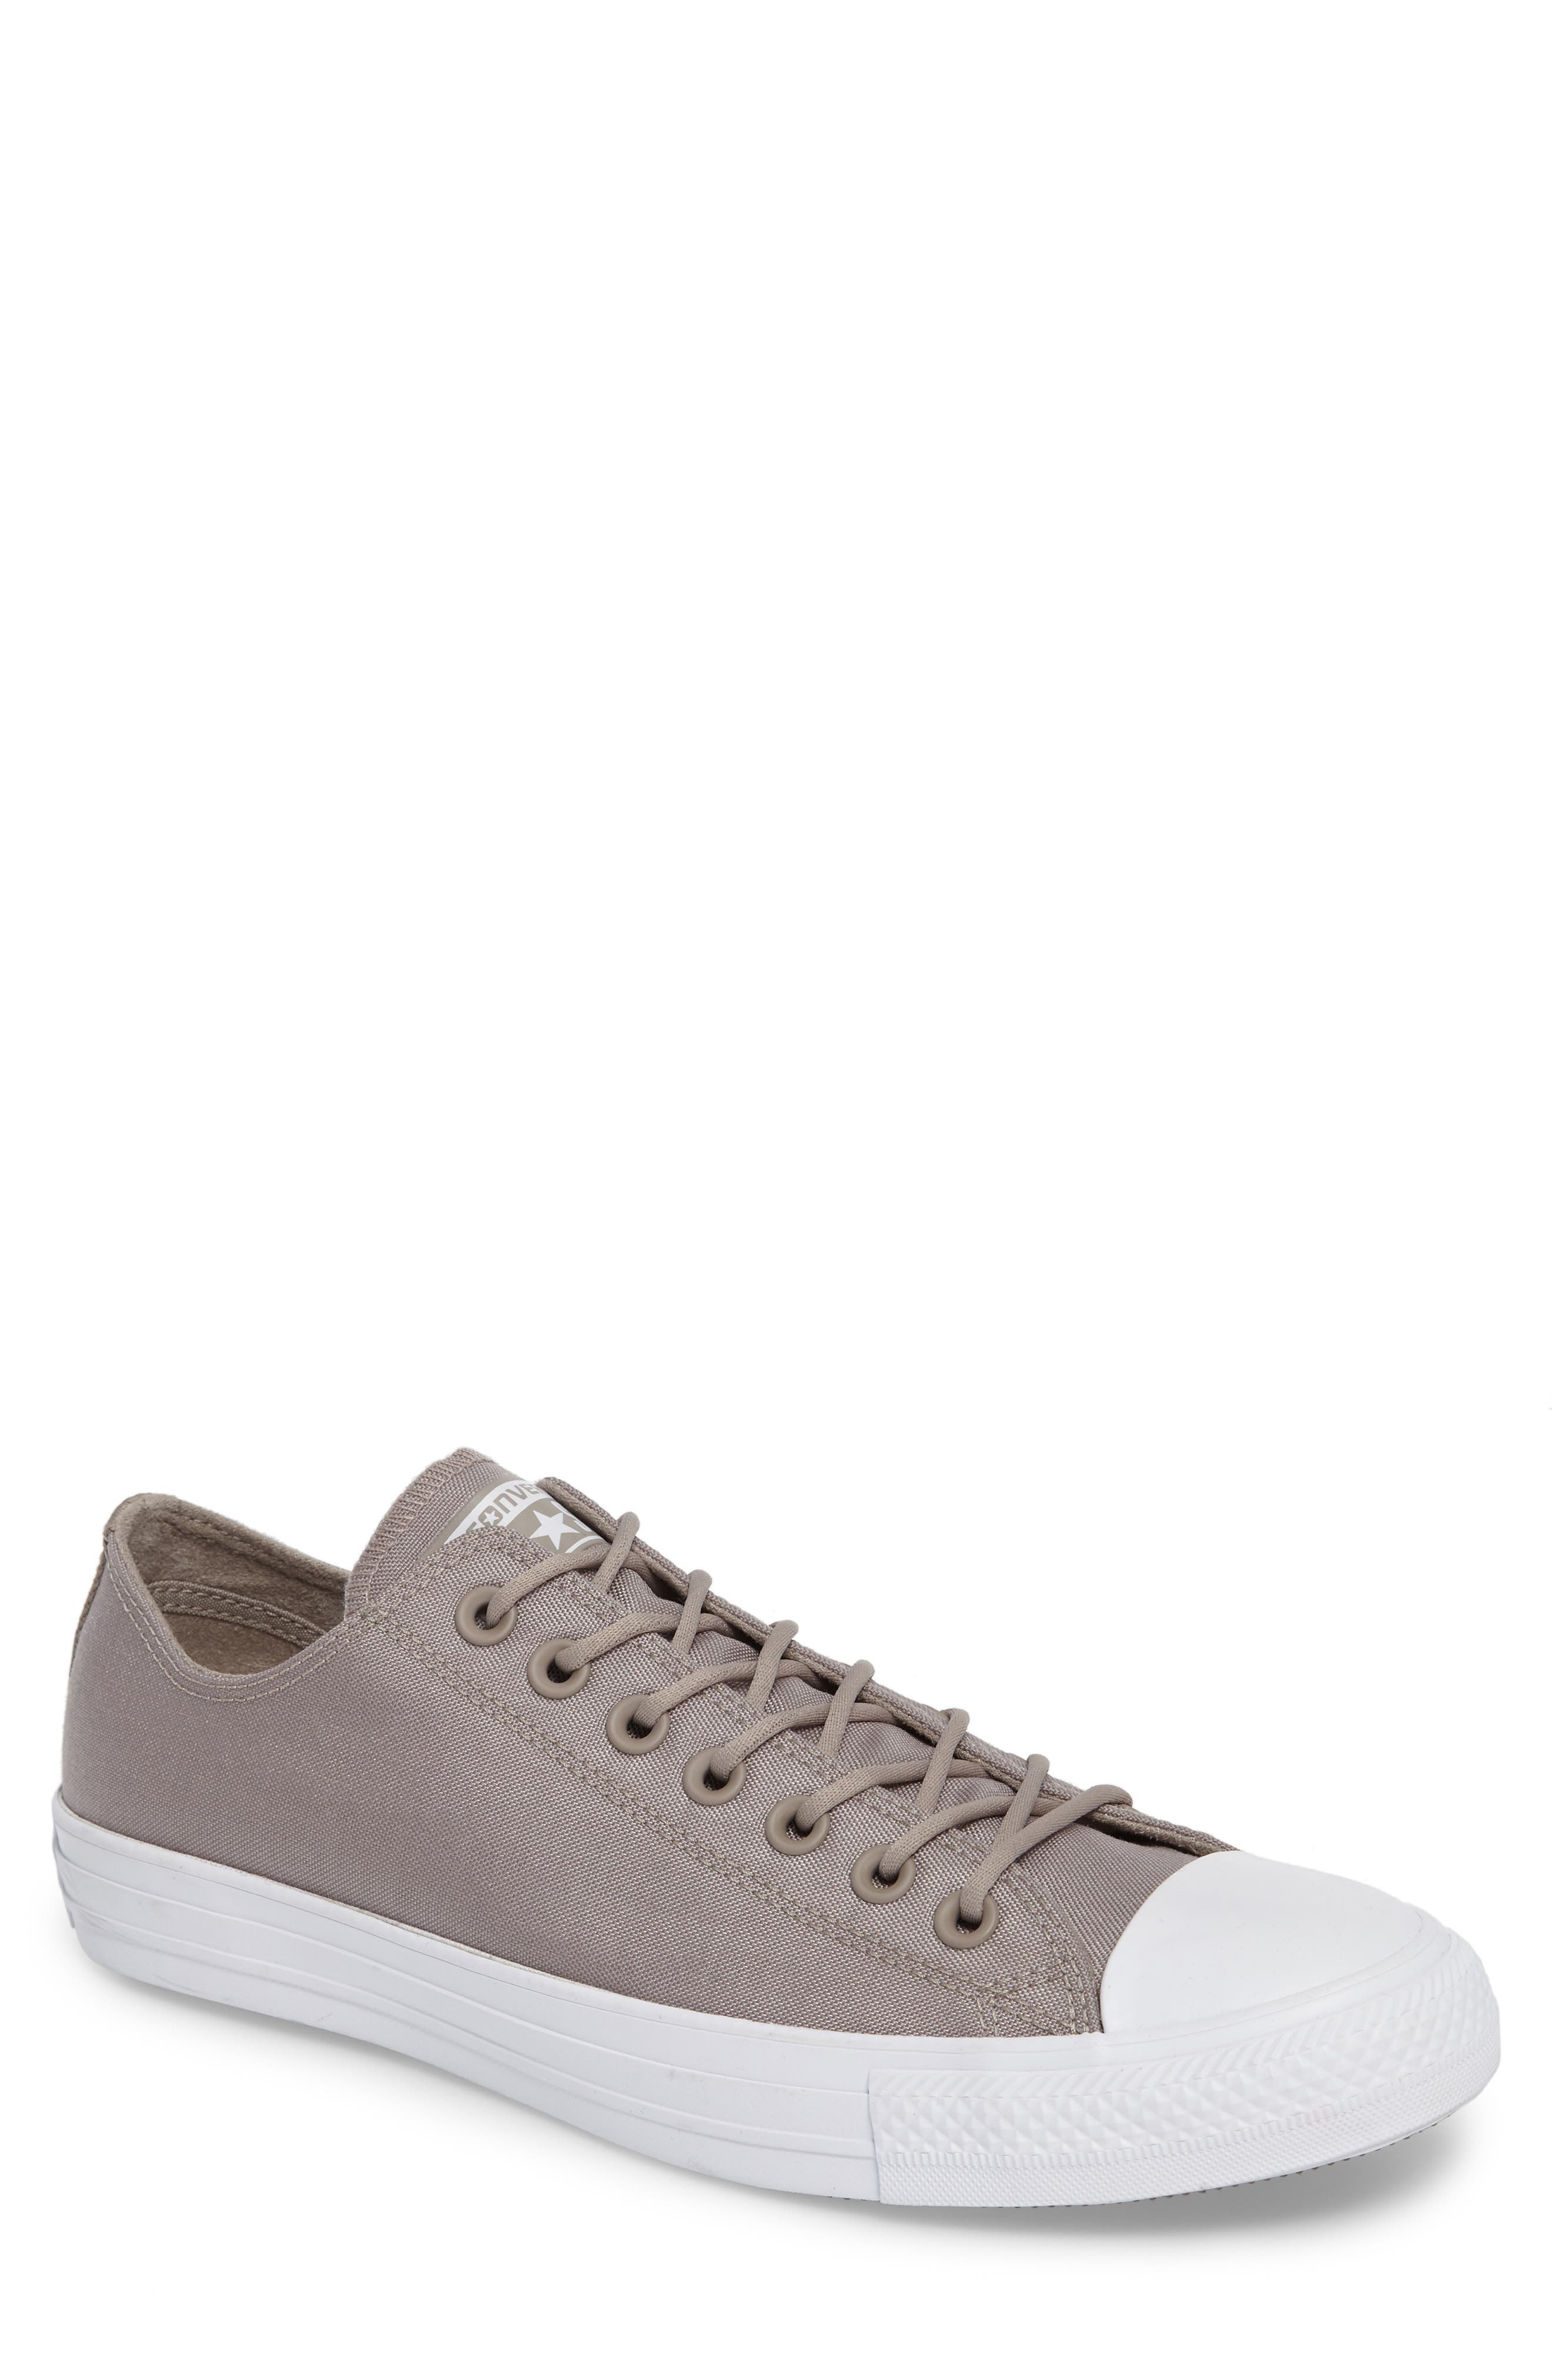 Chuck Taylor<sup>®</sup> All Star<sup>®</sup> Ox Sneaker,                             Main thumbnail 1, color,                             Malted